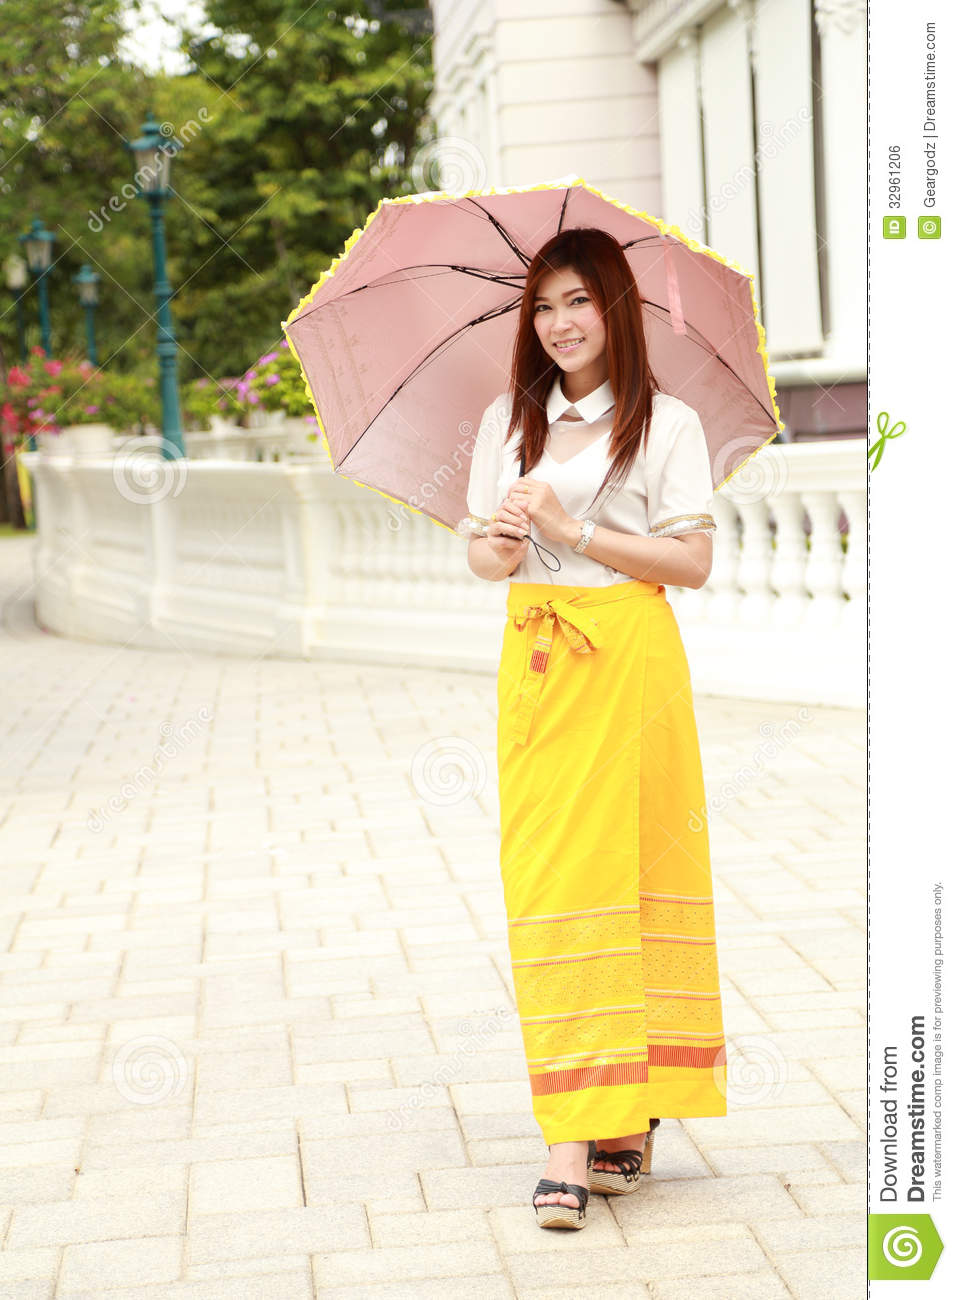 Thai Girl Dressing And Umbrella With Traditional Style